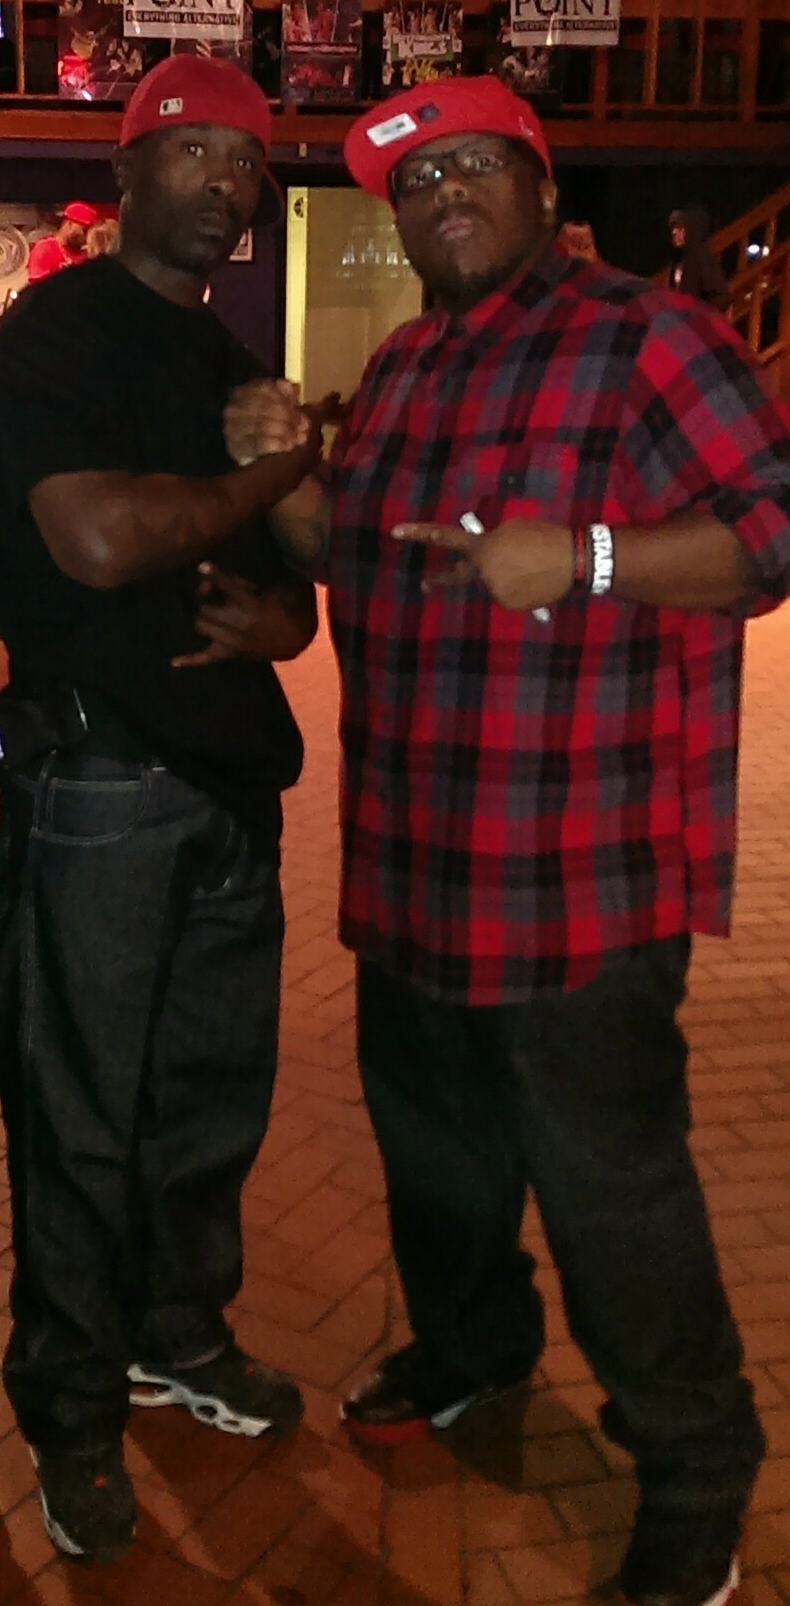 Train Wrecka and Krizz Kaliko